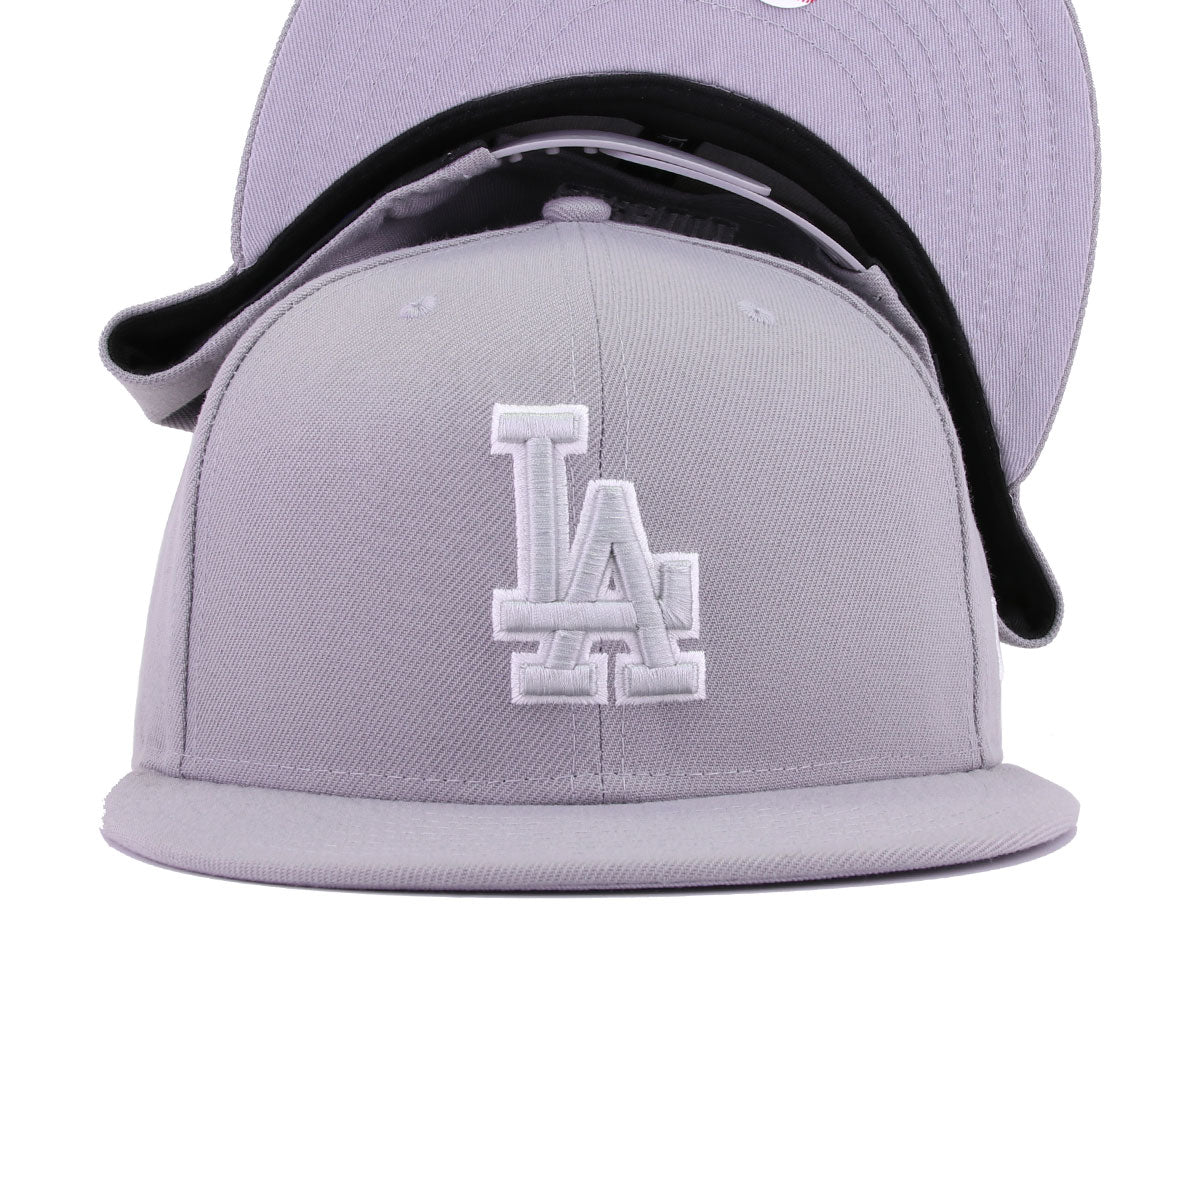 Los Angeles Dodgers Grey Tonal New Era 9Fifty Snapback